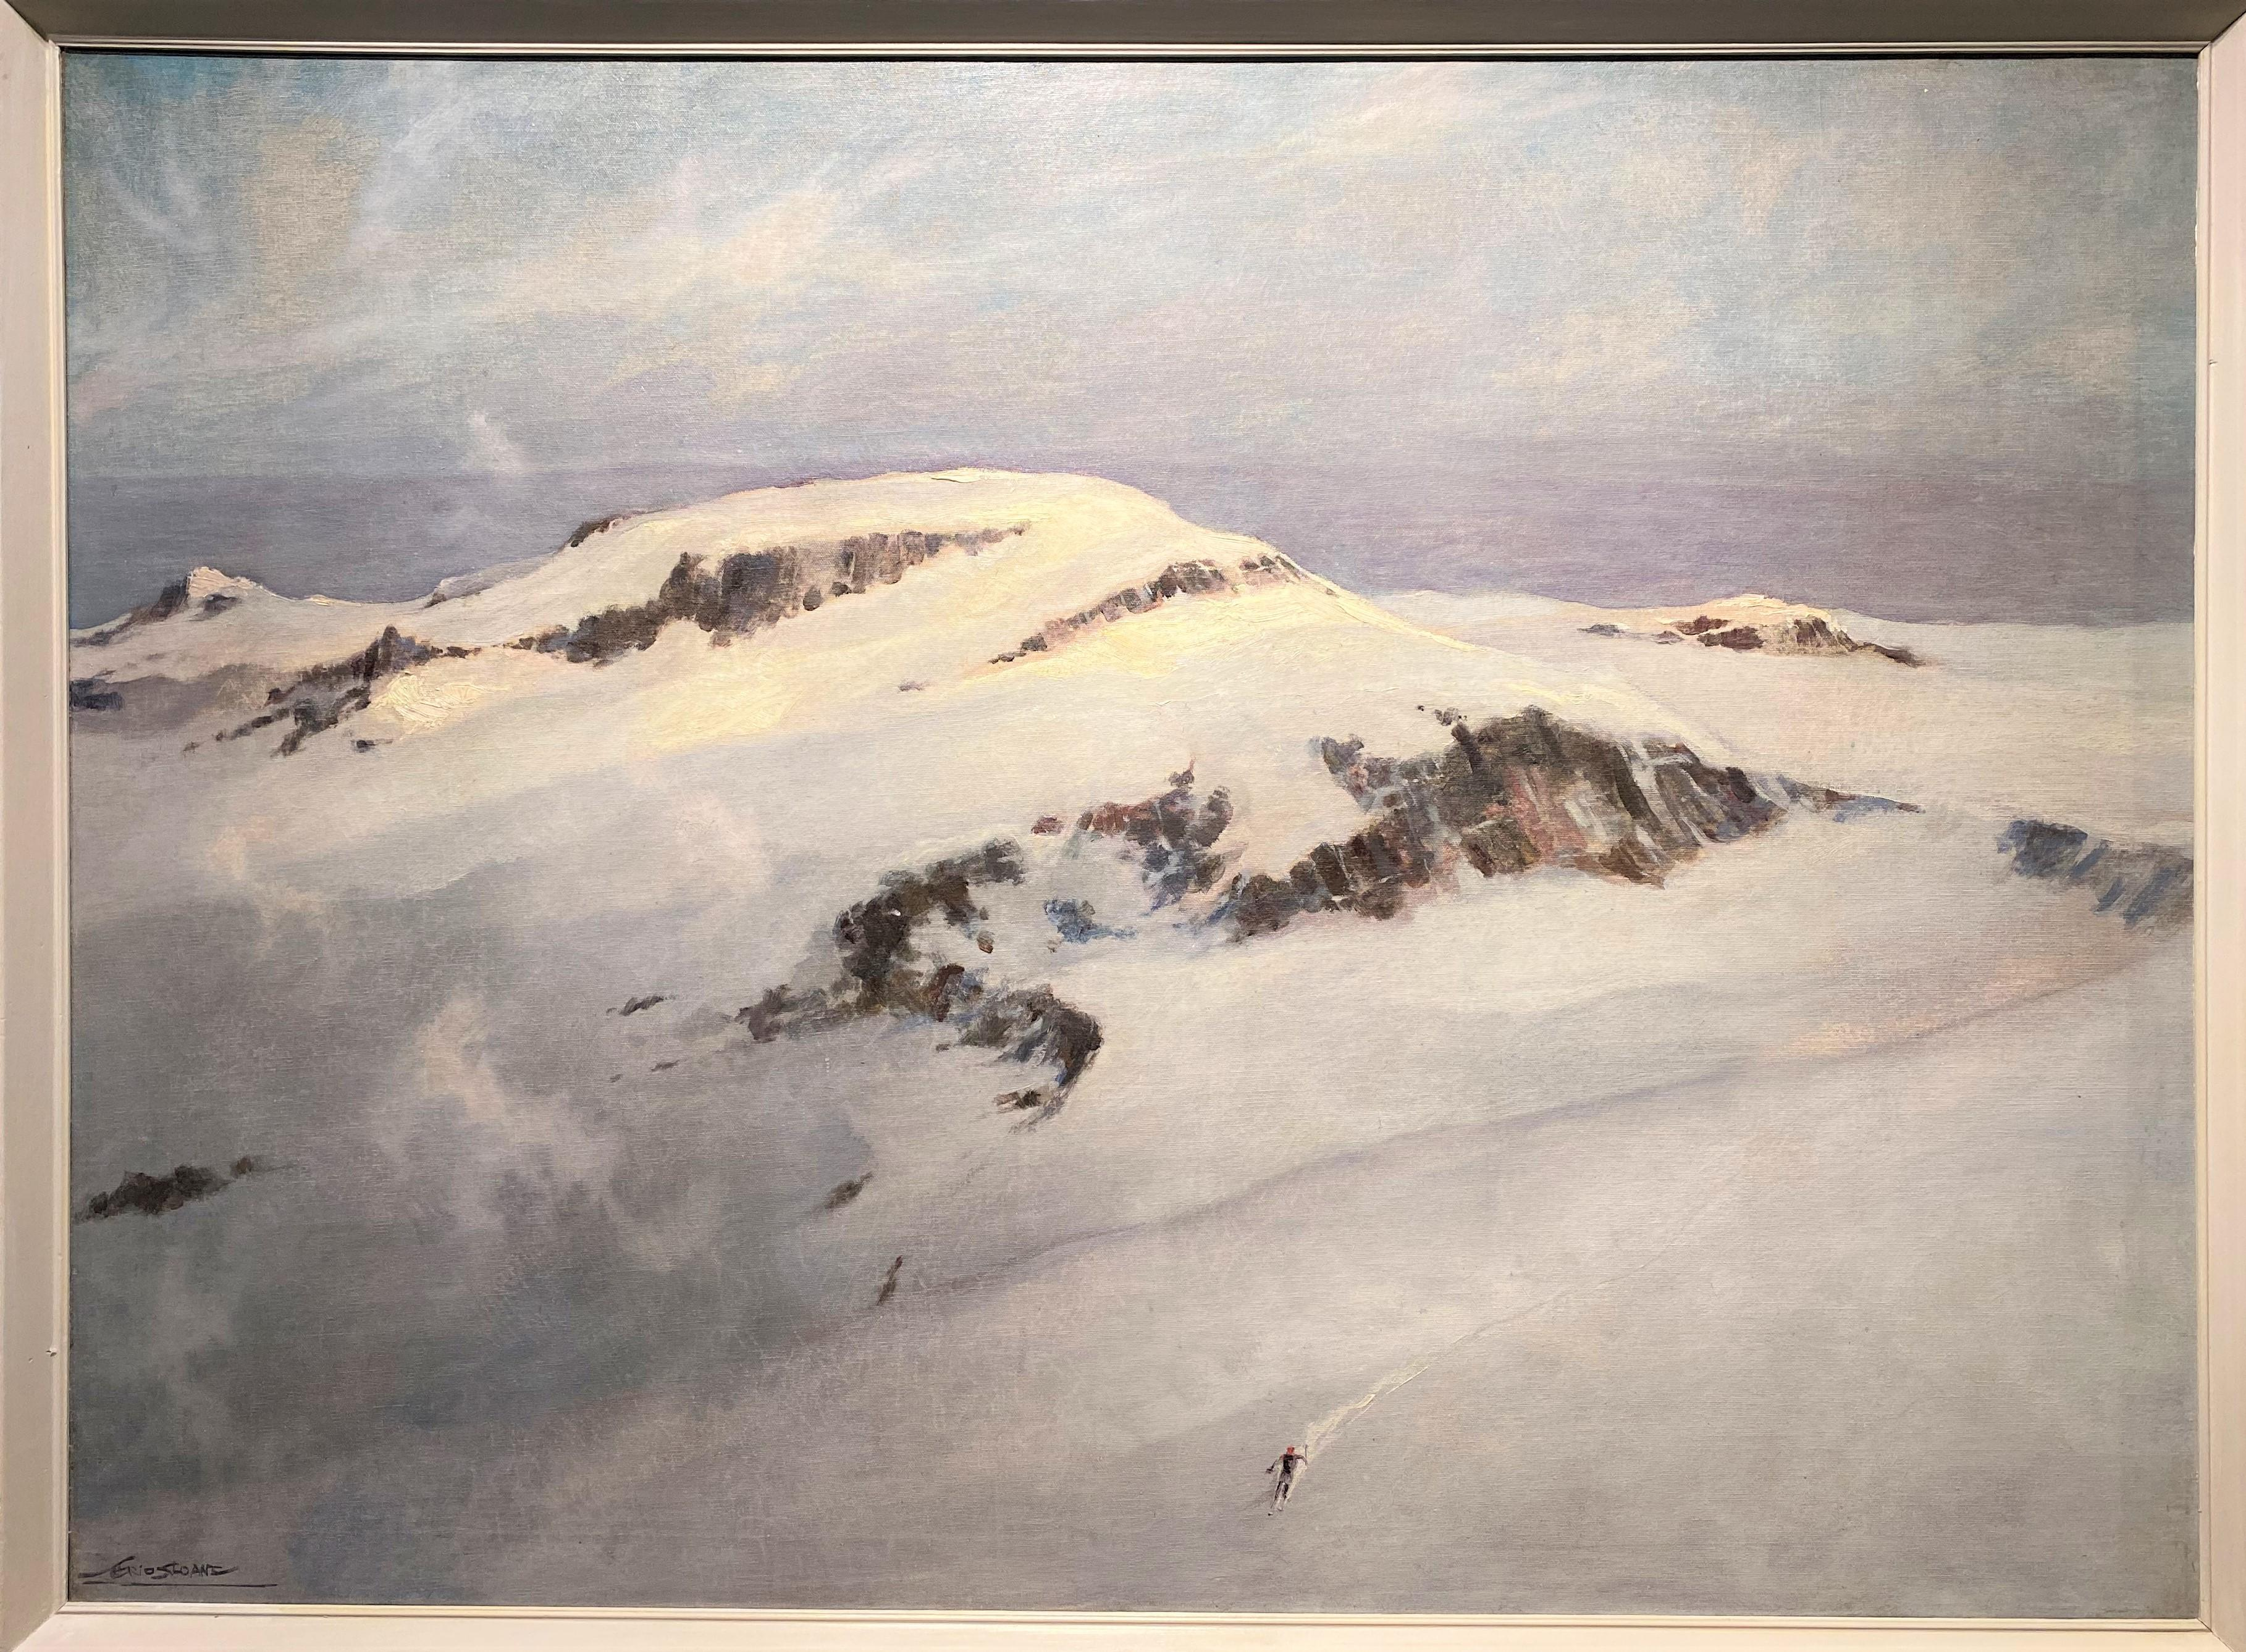 Winter Mountain Landscape with Skier